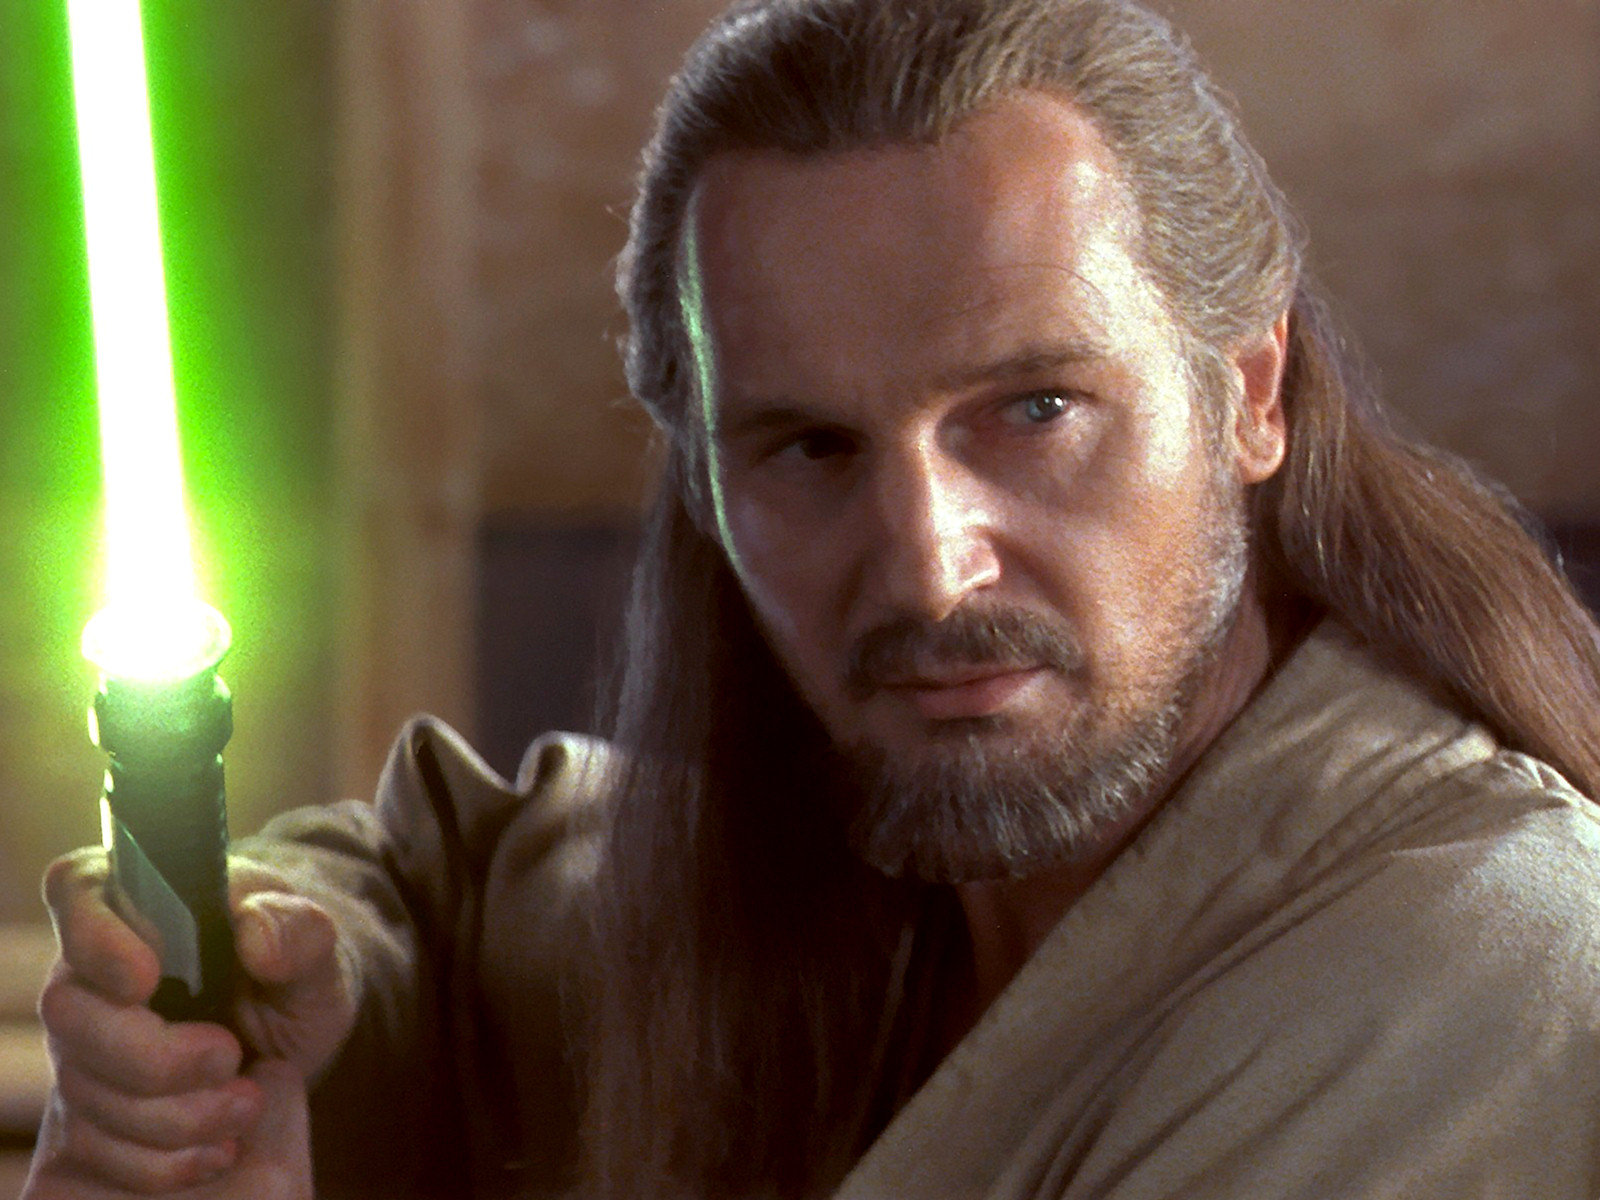 Star Wars Episode 1 I The Phantom Menace Wallpapers Hd For